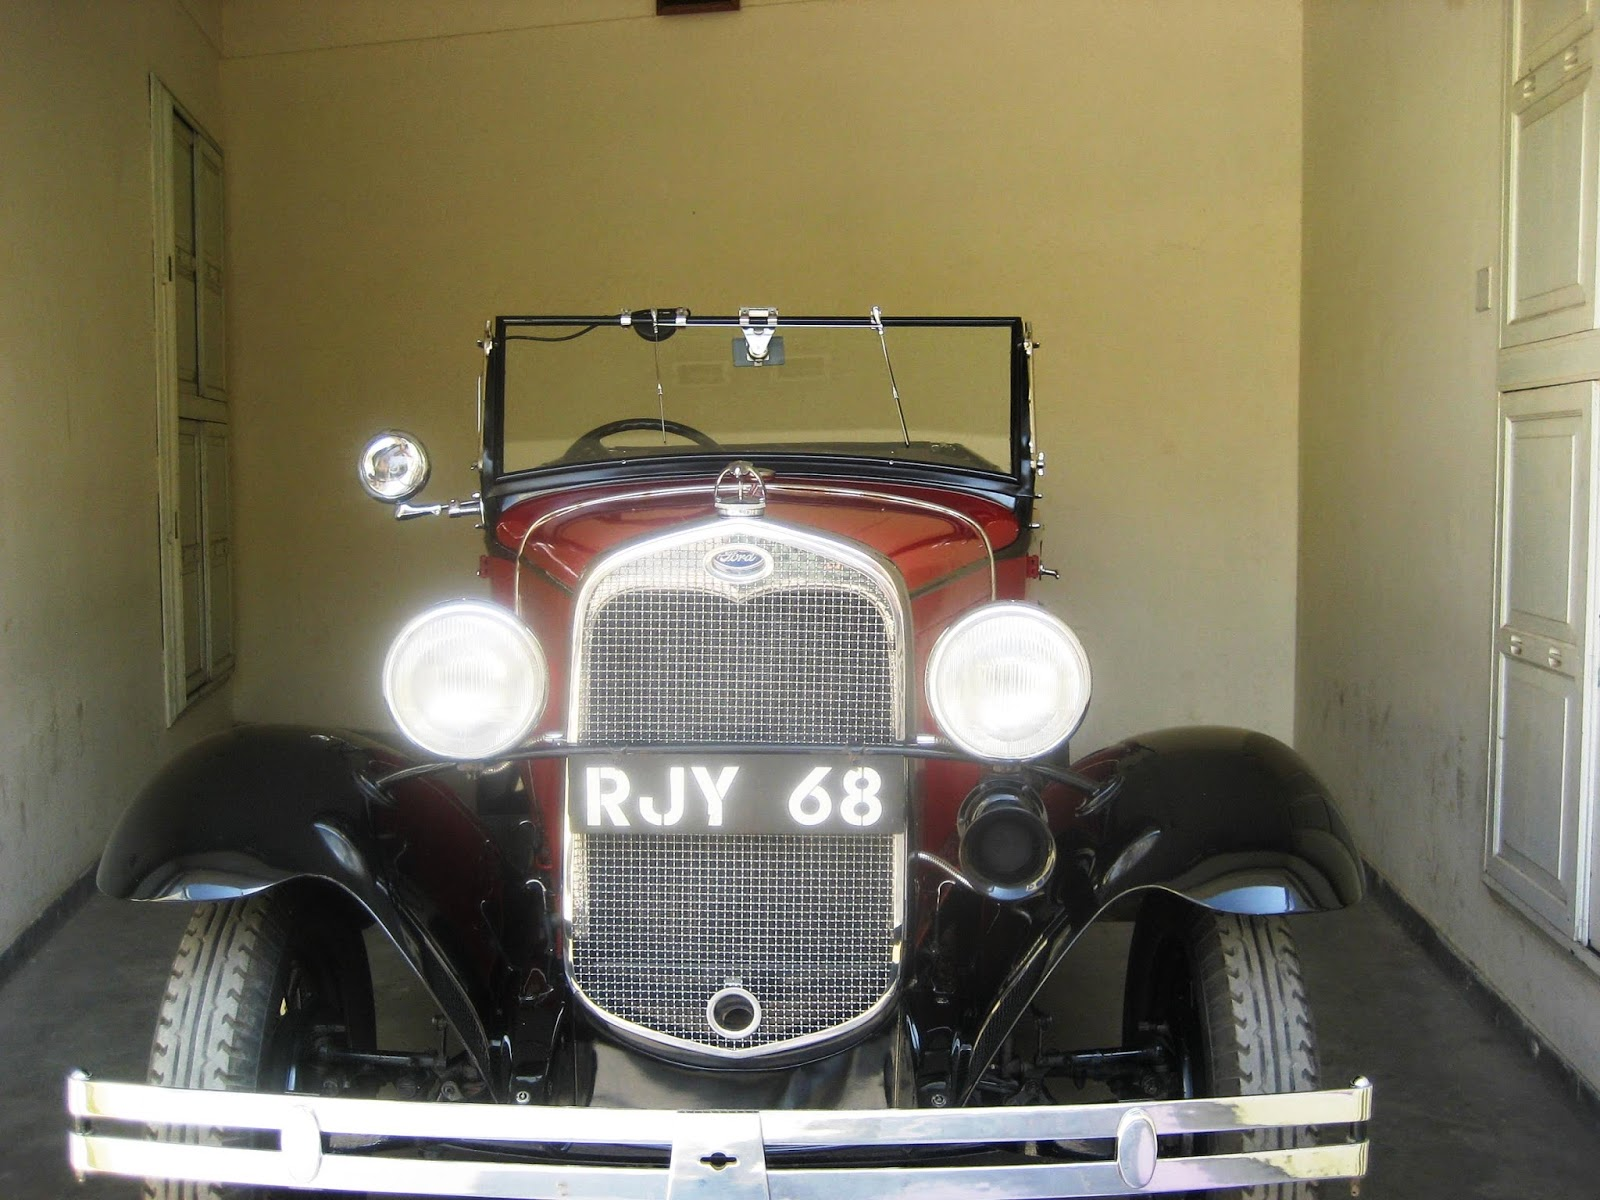 Vintage Car Collection at Udaipur Palace | Wanderful